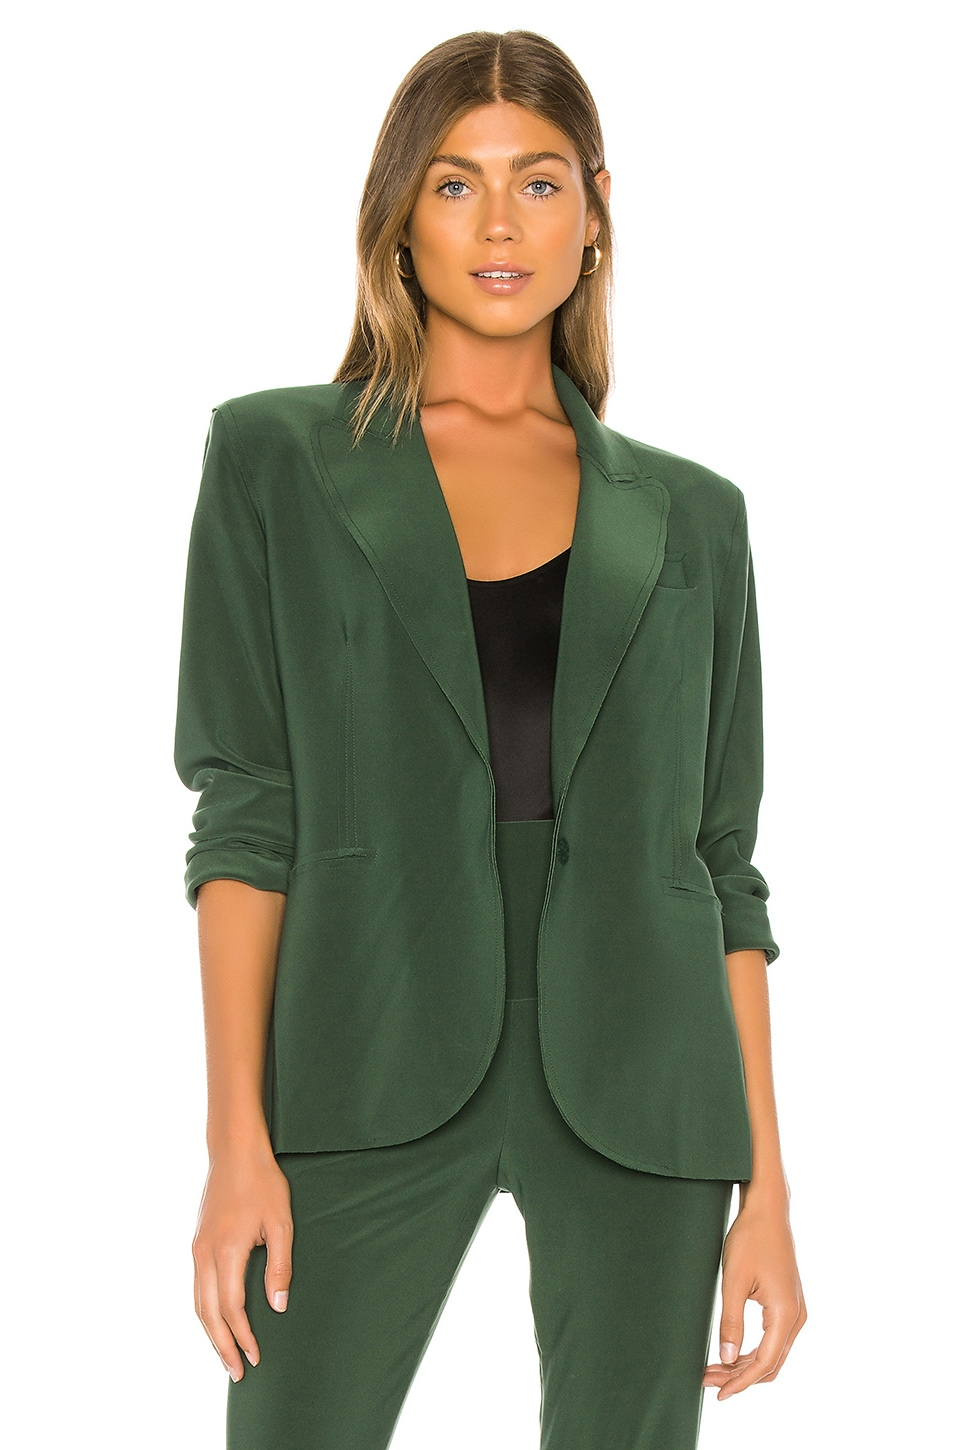 Norma Kamali Single Breasted Jacket in Forest Green